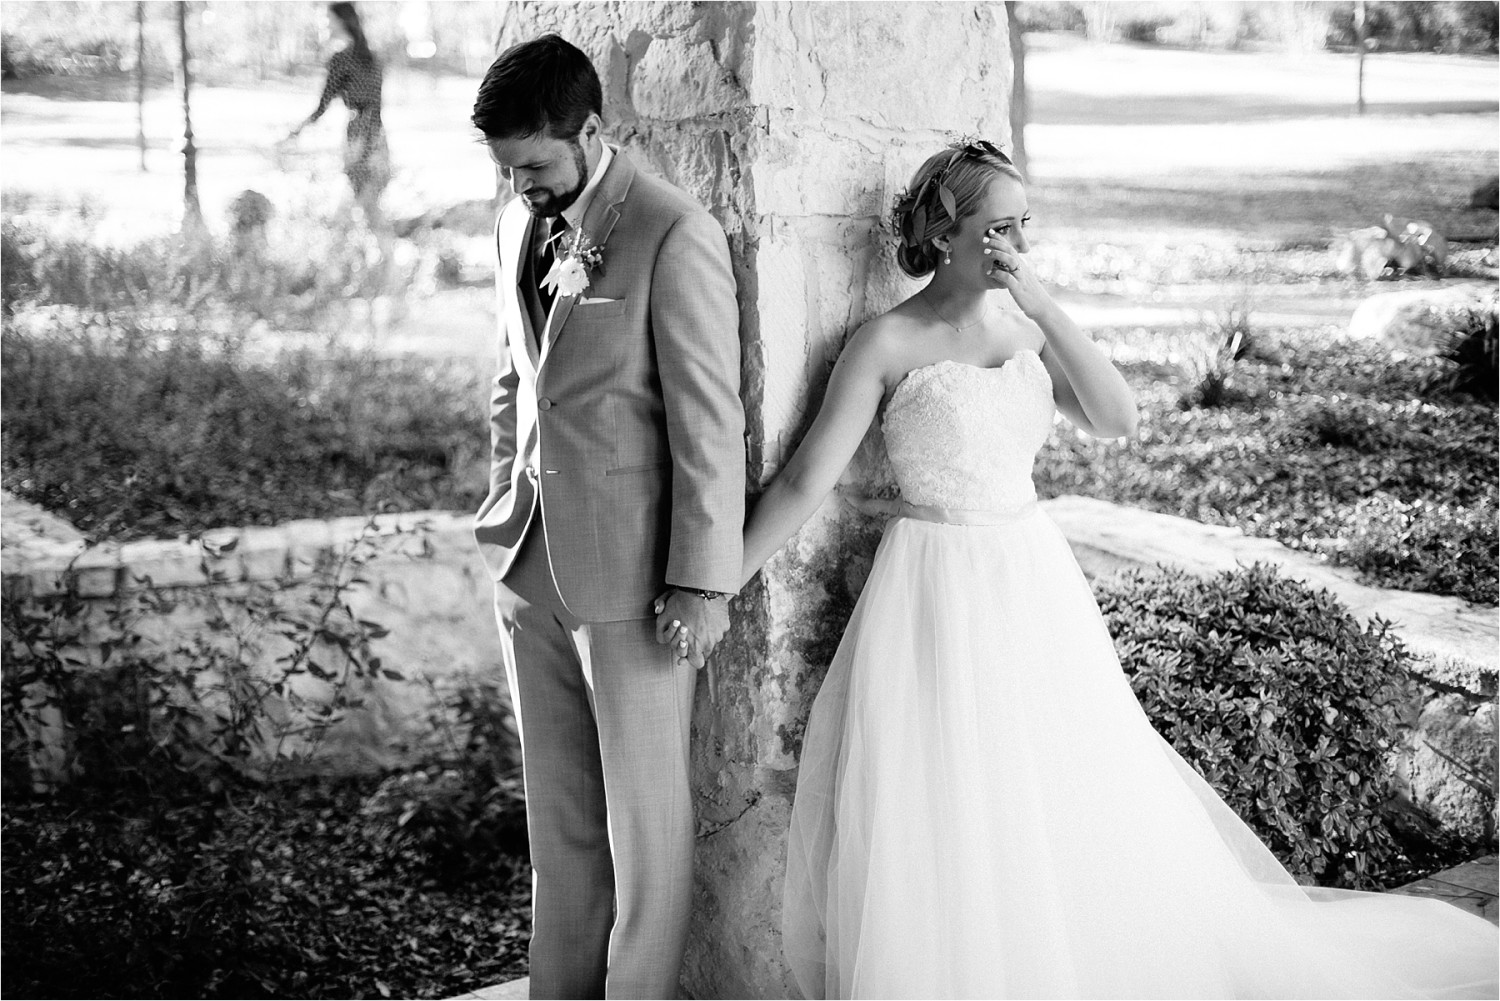 brad-lara-__-a-grey-and-blush-pink-intimate-wedding-at-hidden-waters-event-center-in-waxahachie-tx-by-north-texas-wedding-photographer-rachel-meagan-photography-_-034